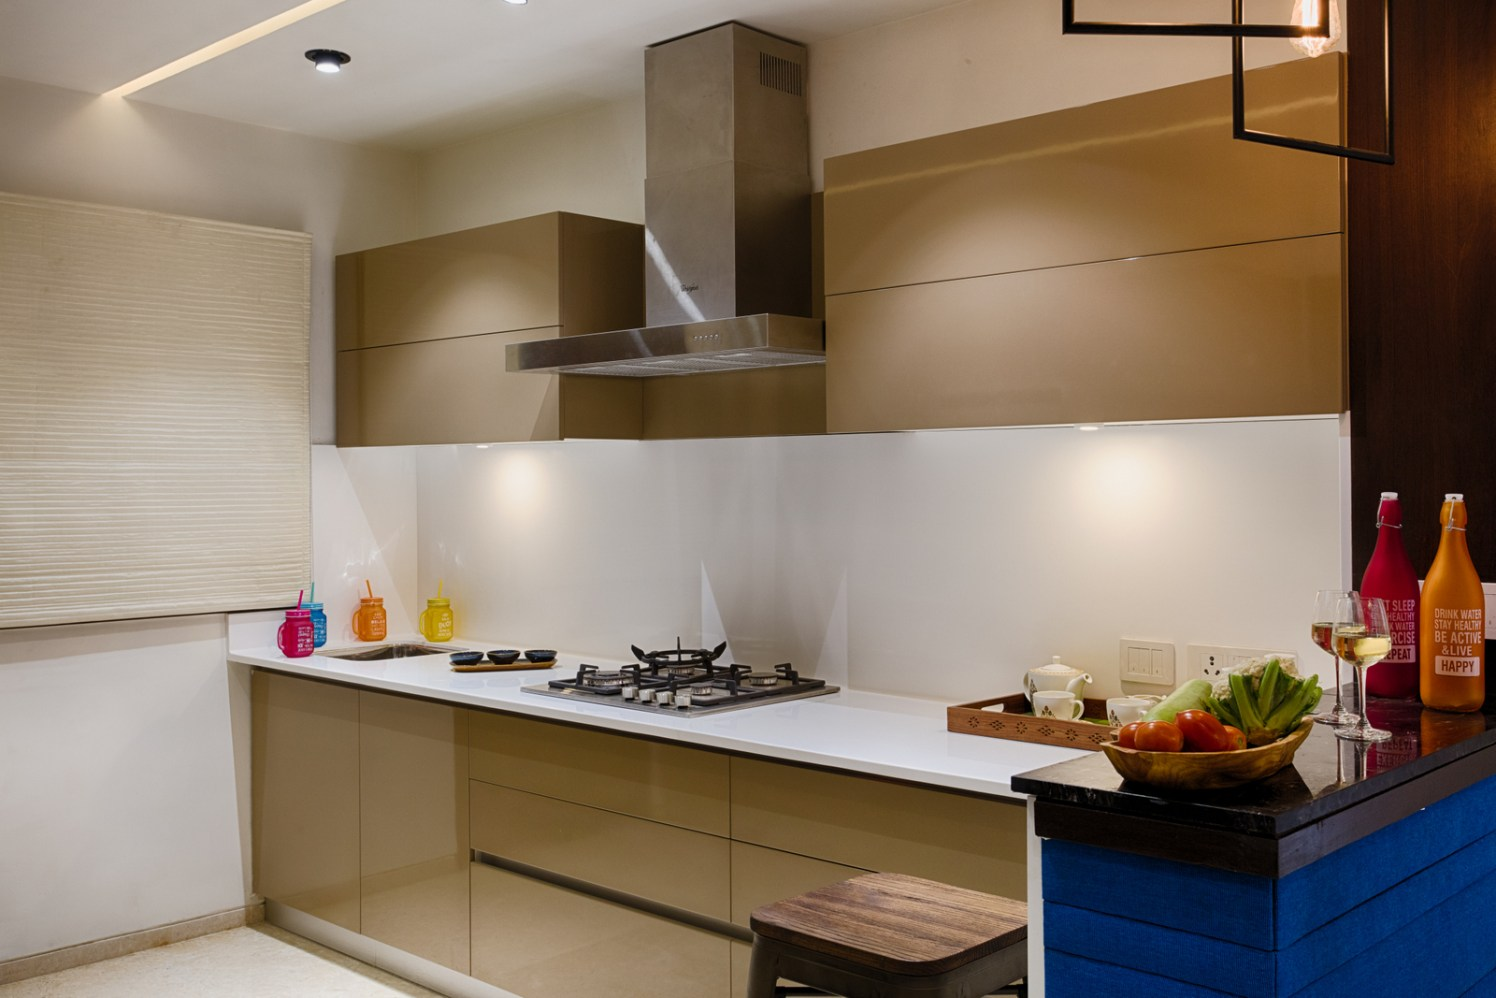 Beige Cabinets And Modern Interior of Parallel Kitchen ...